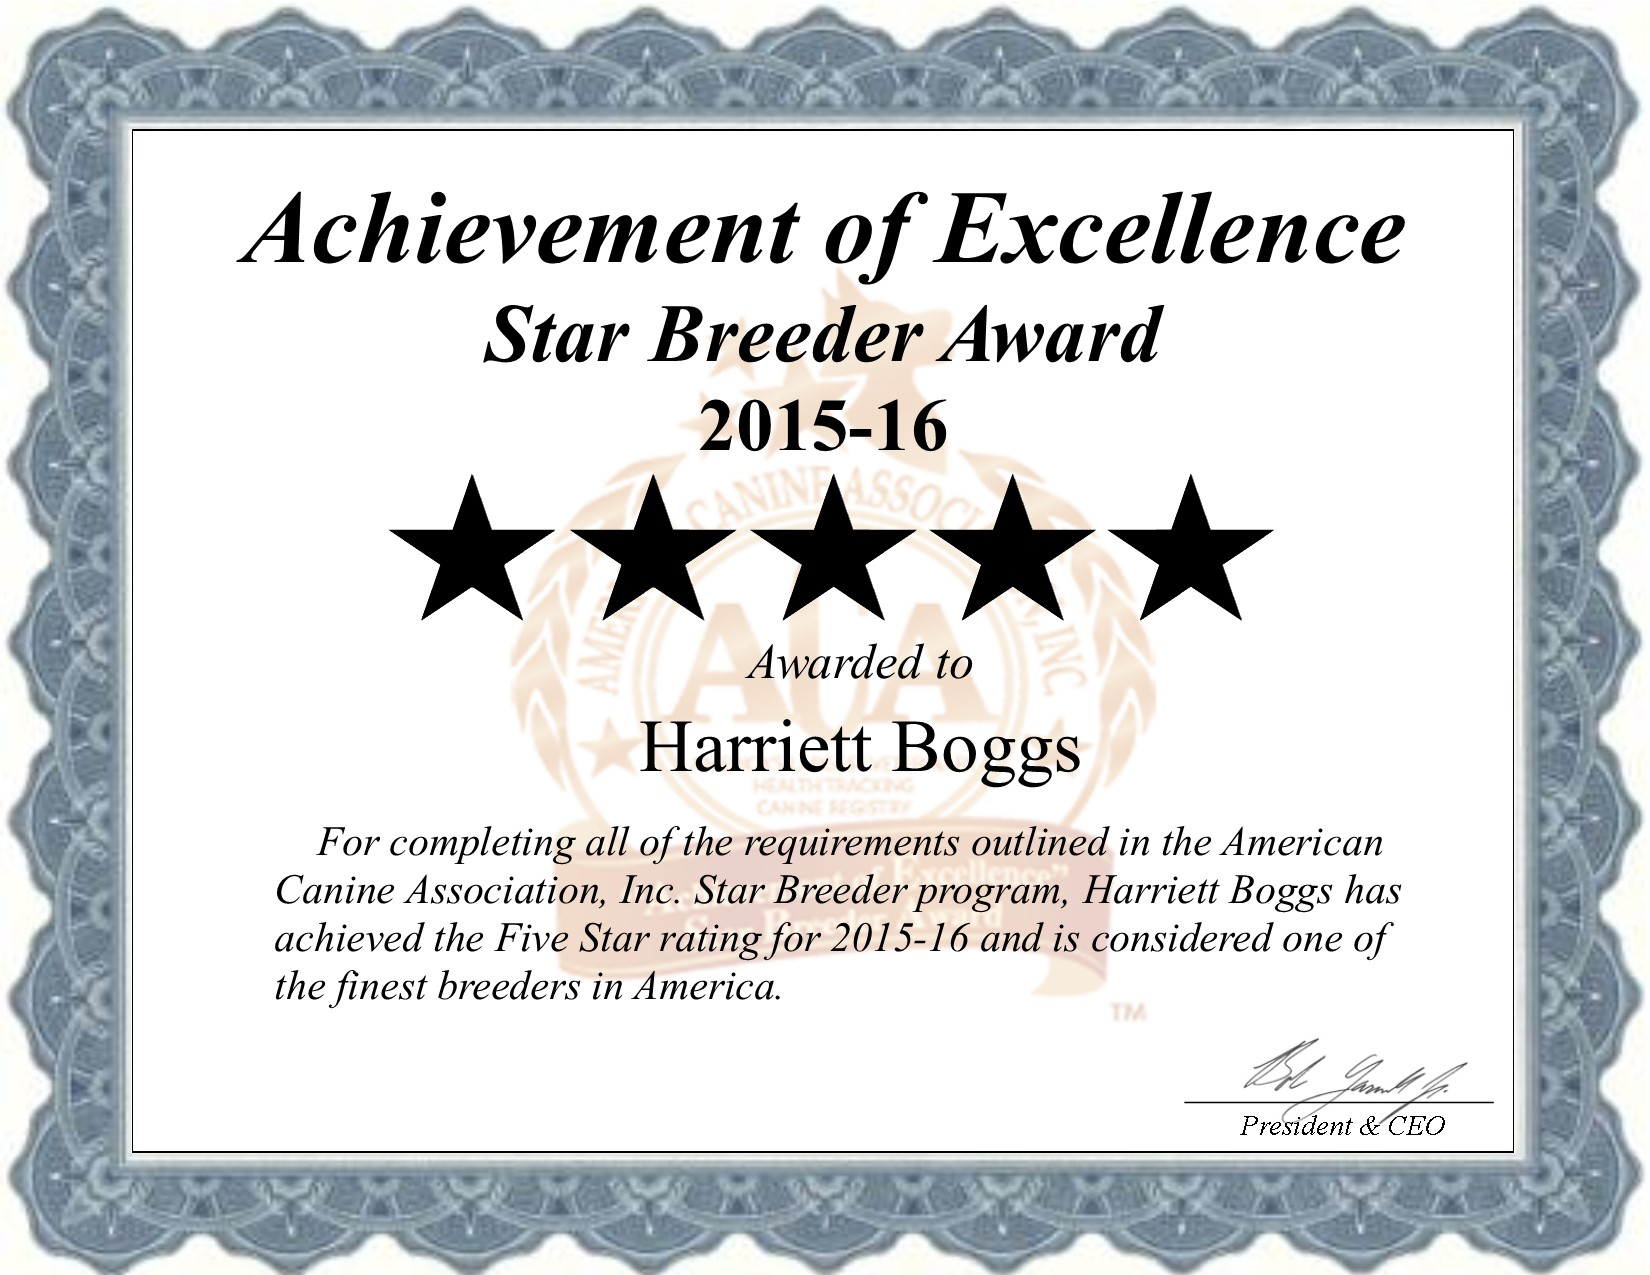 Harriett, boggs, dog, breeder, harriett-boggs, dog-breeder, Harriett Boggs, Boggs kennel, star, star breeder, 5 star, ACA, niangua, Missouri, MO, dogs, show, handler, puppy, puppies, five star, puppy mill, puppymill, professional, show breeder, starbreeders, champions